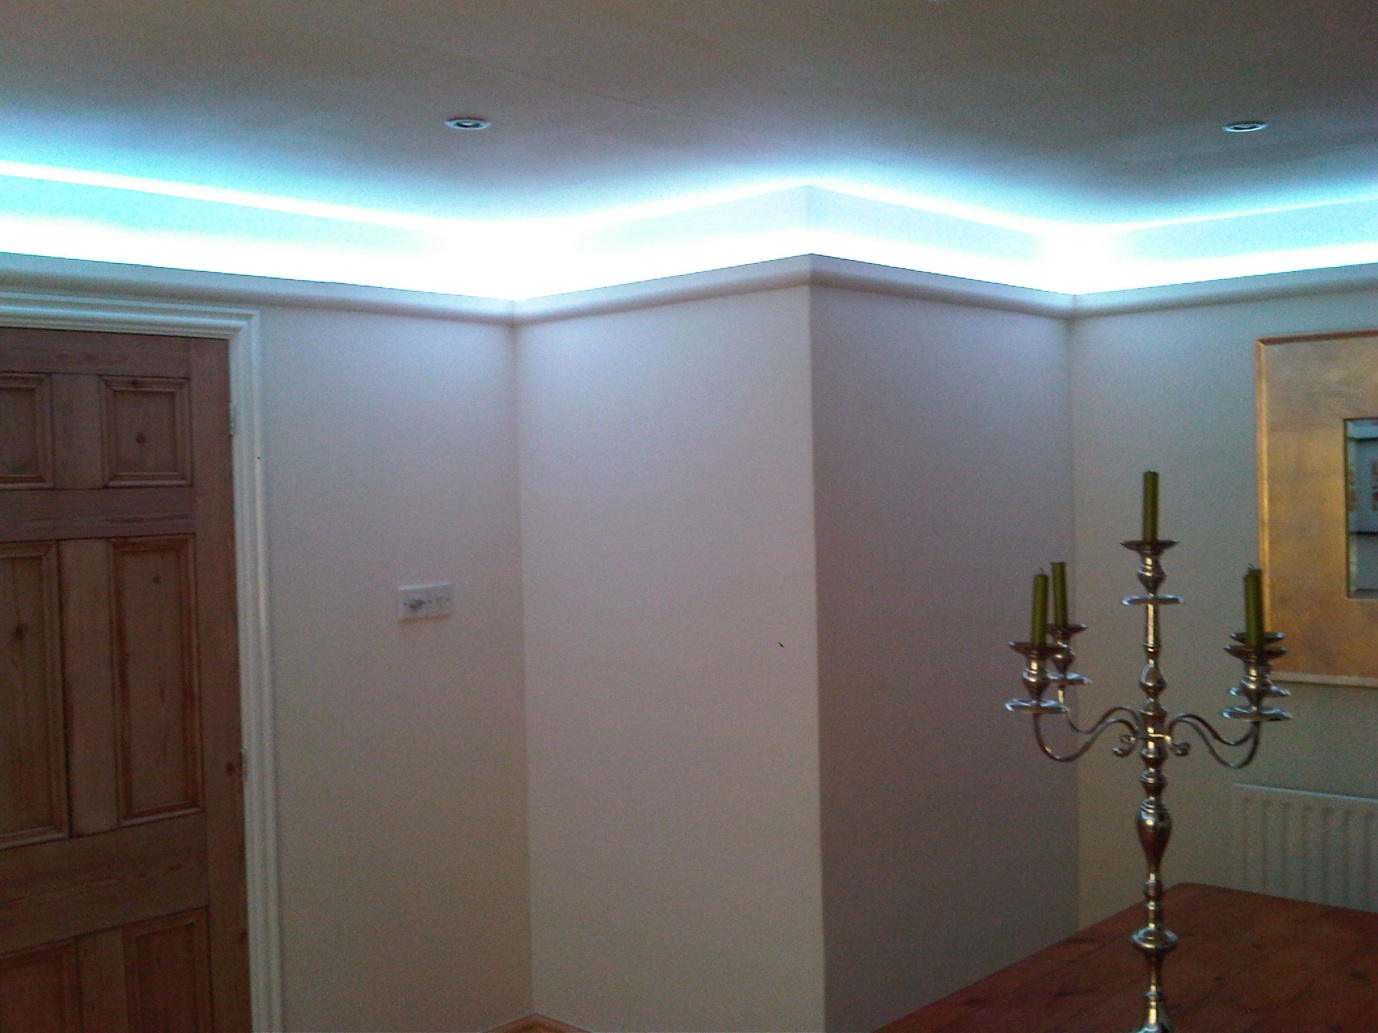 Instyle led lighting ideas of where to use the led tape for Led lighting ideas for living room